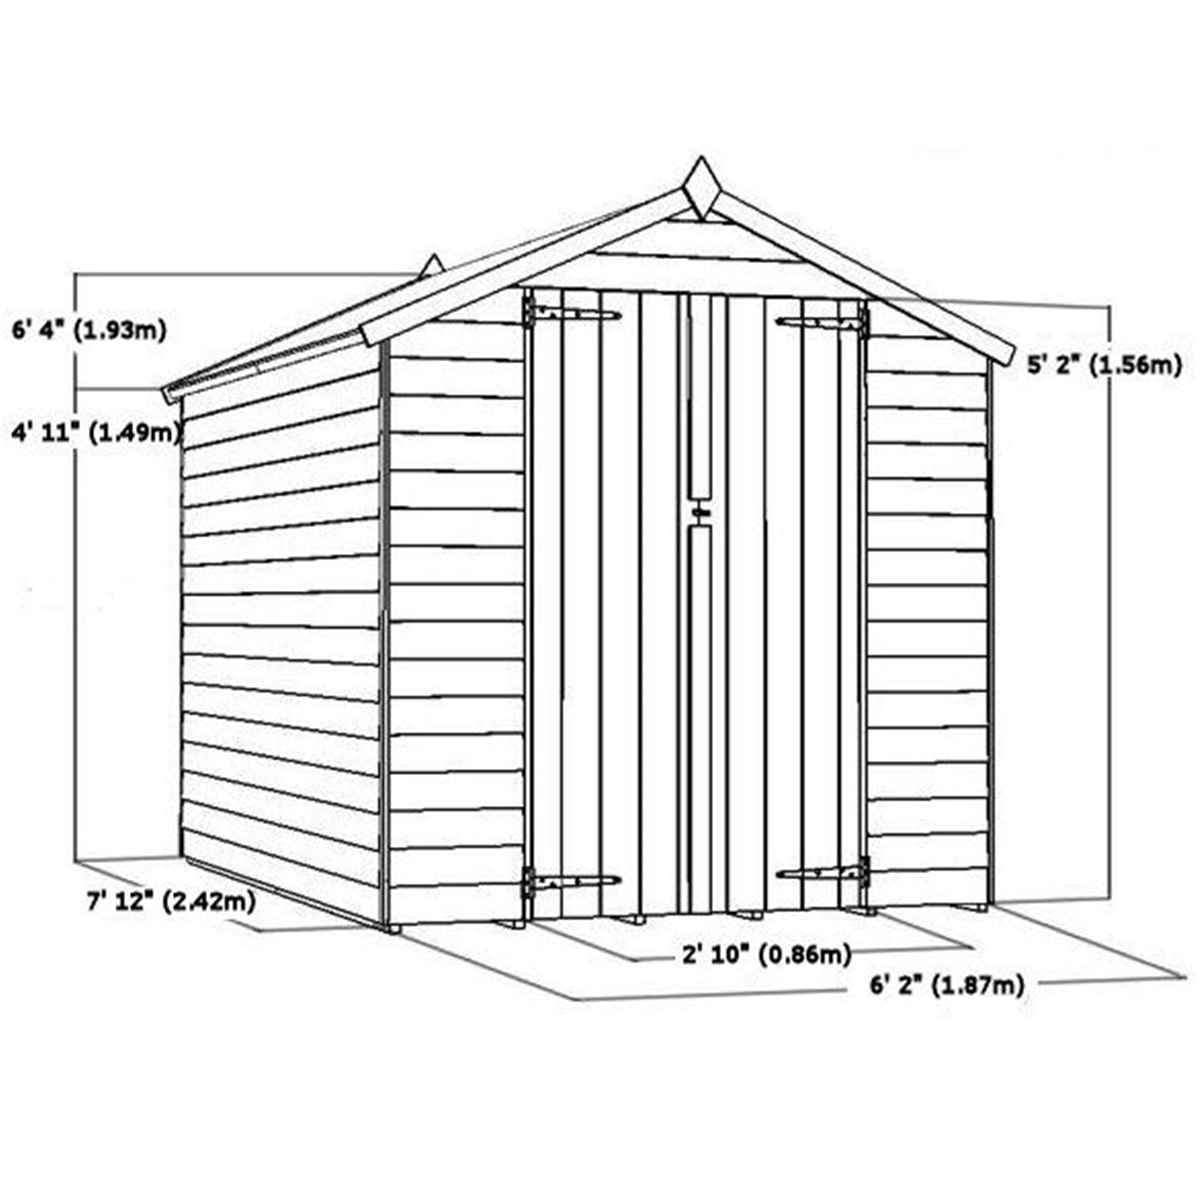 Sheds 6 X 8 Double Doors,planet Pergolas,menards Shed Plans   PDF Books